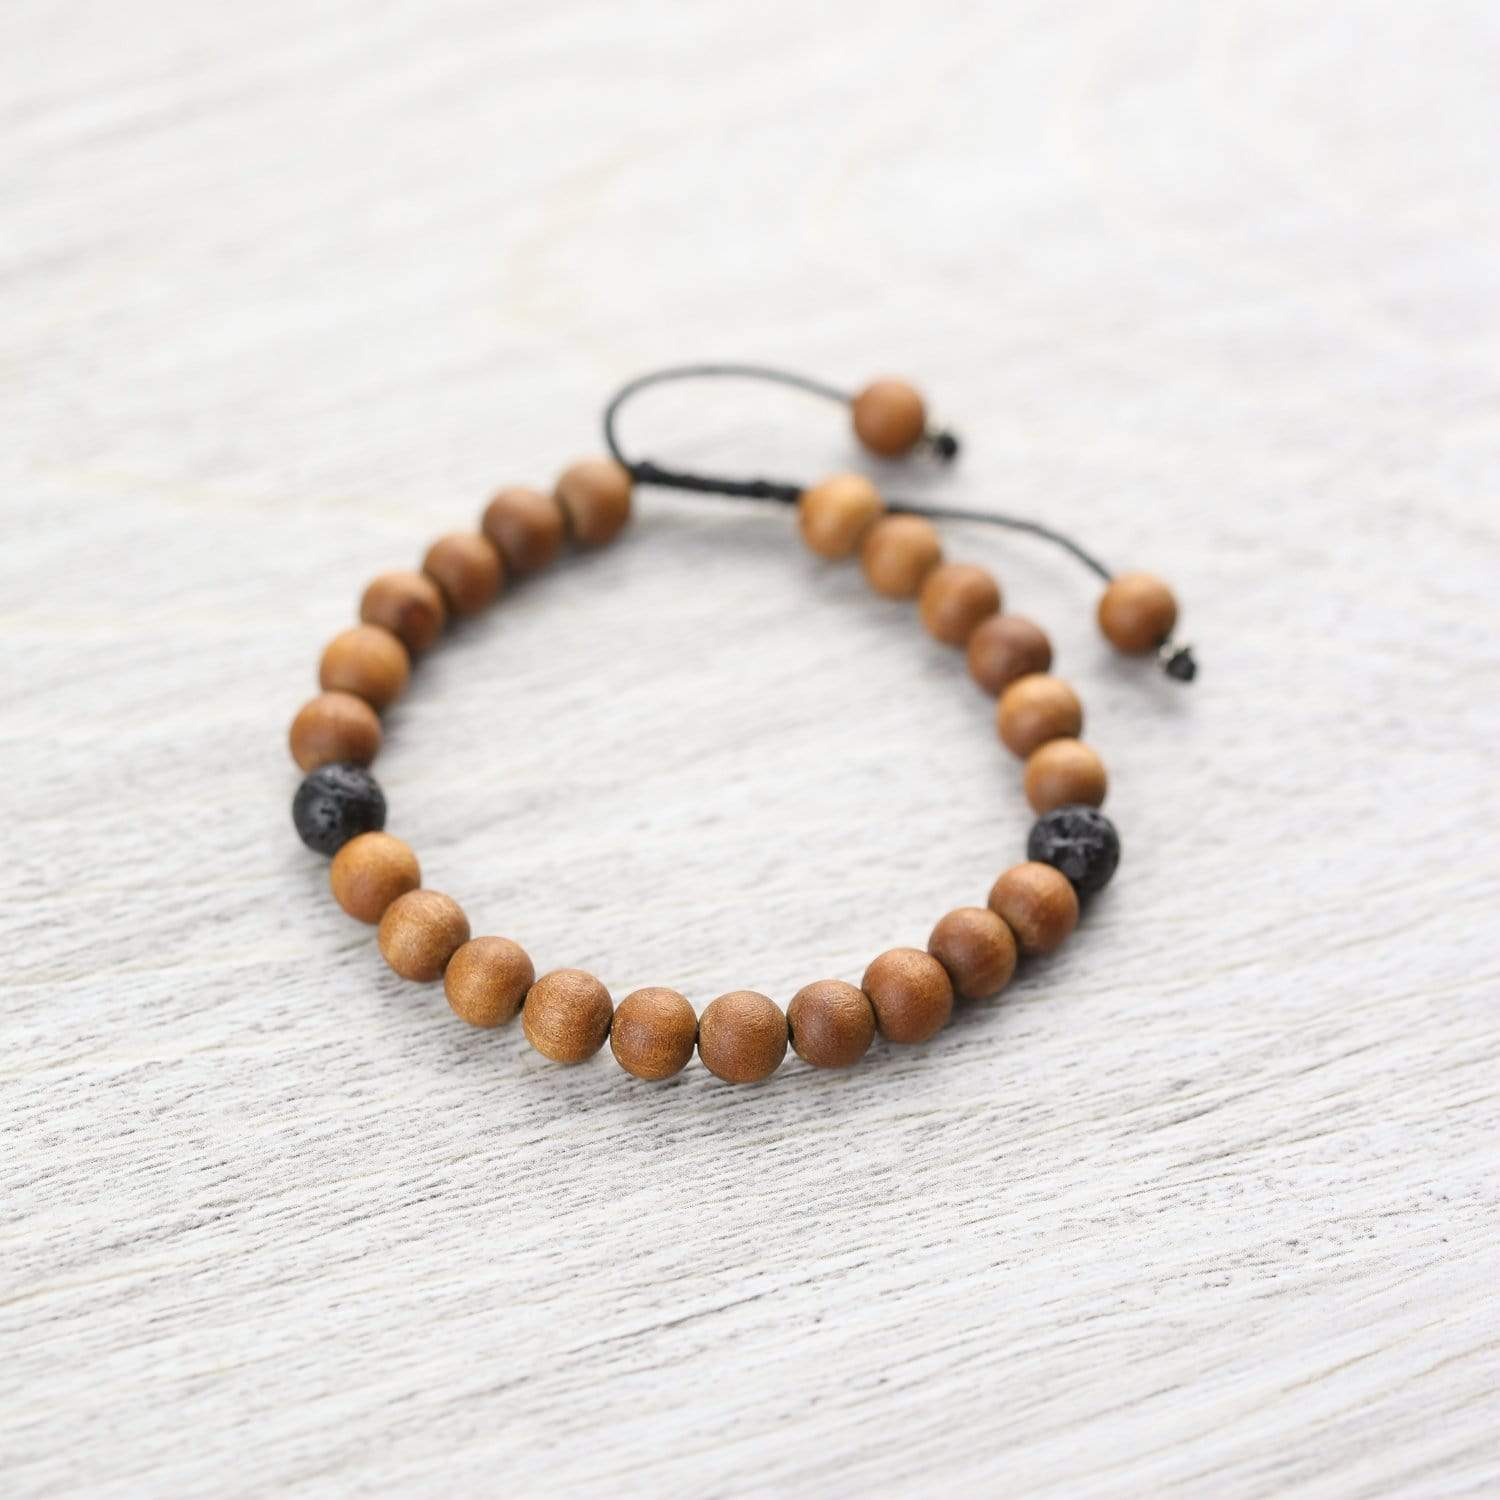 Wrist Malas Sweet Sandalwood and Lava Rock Bracelet WM446